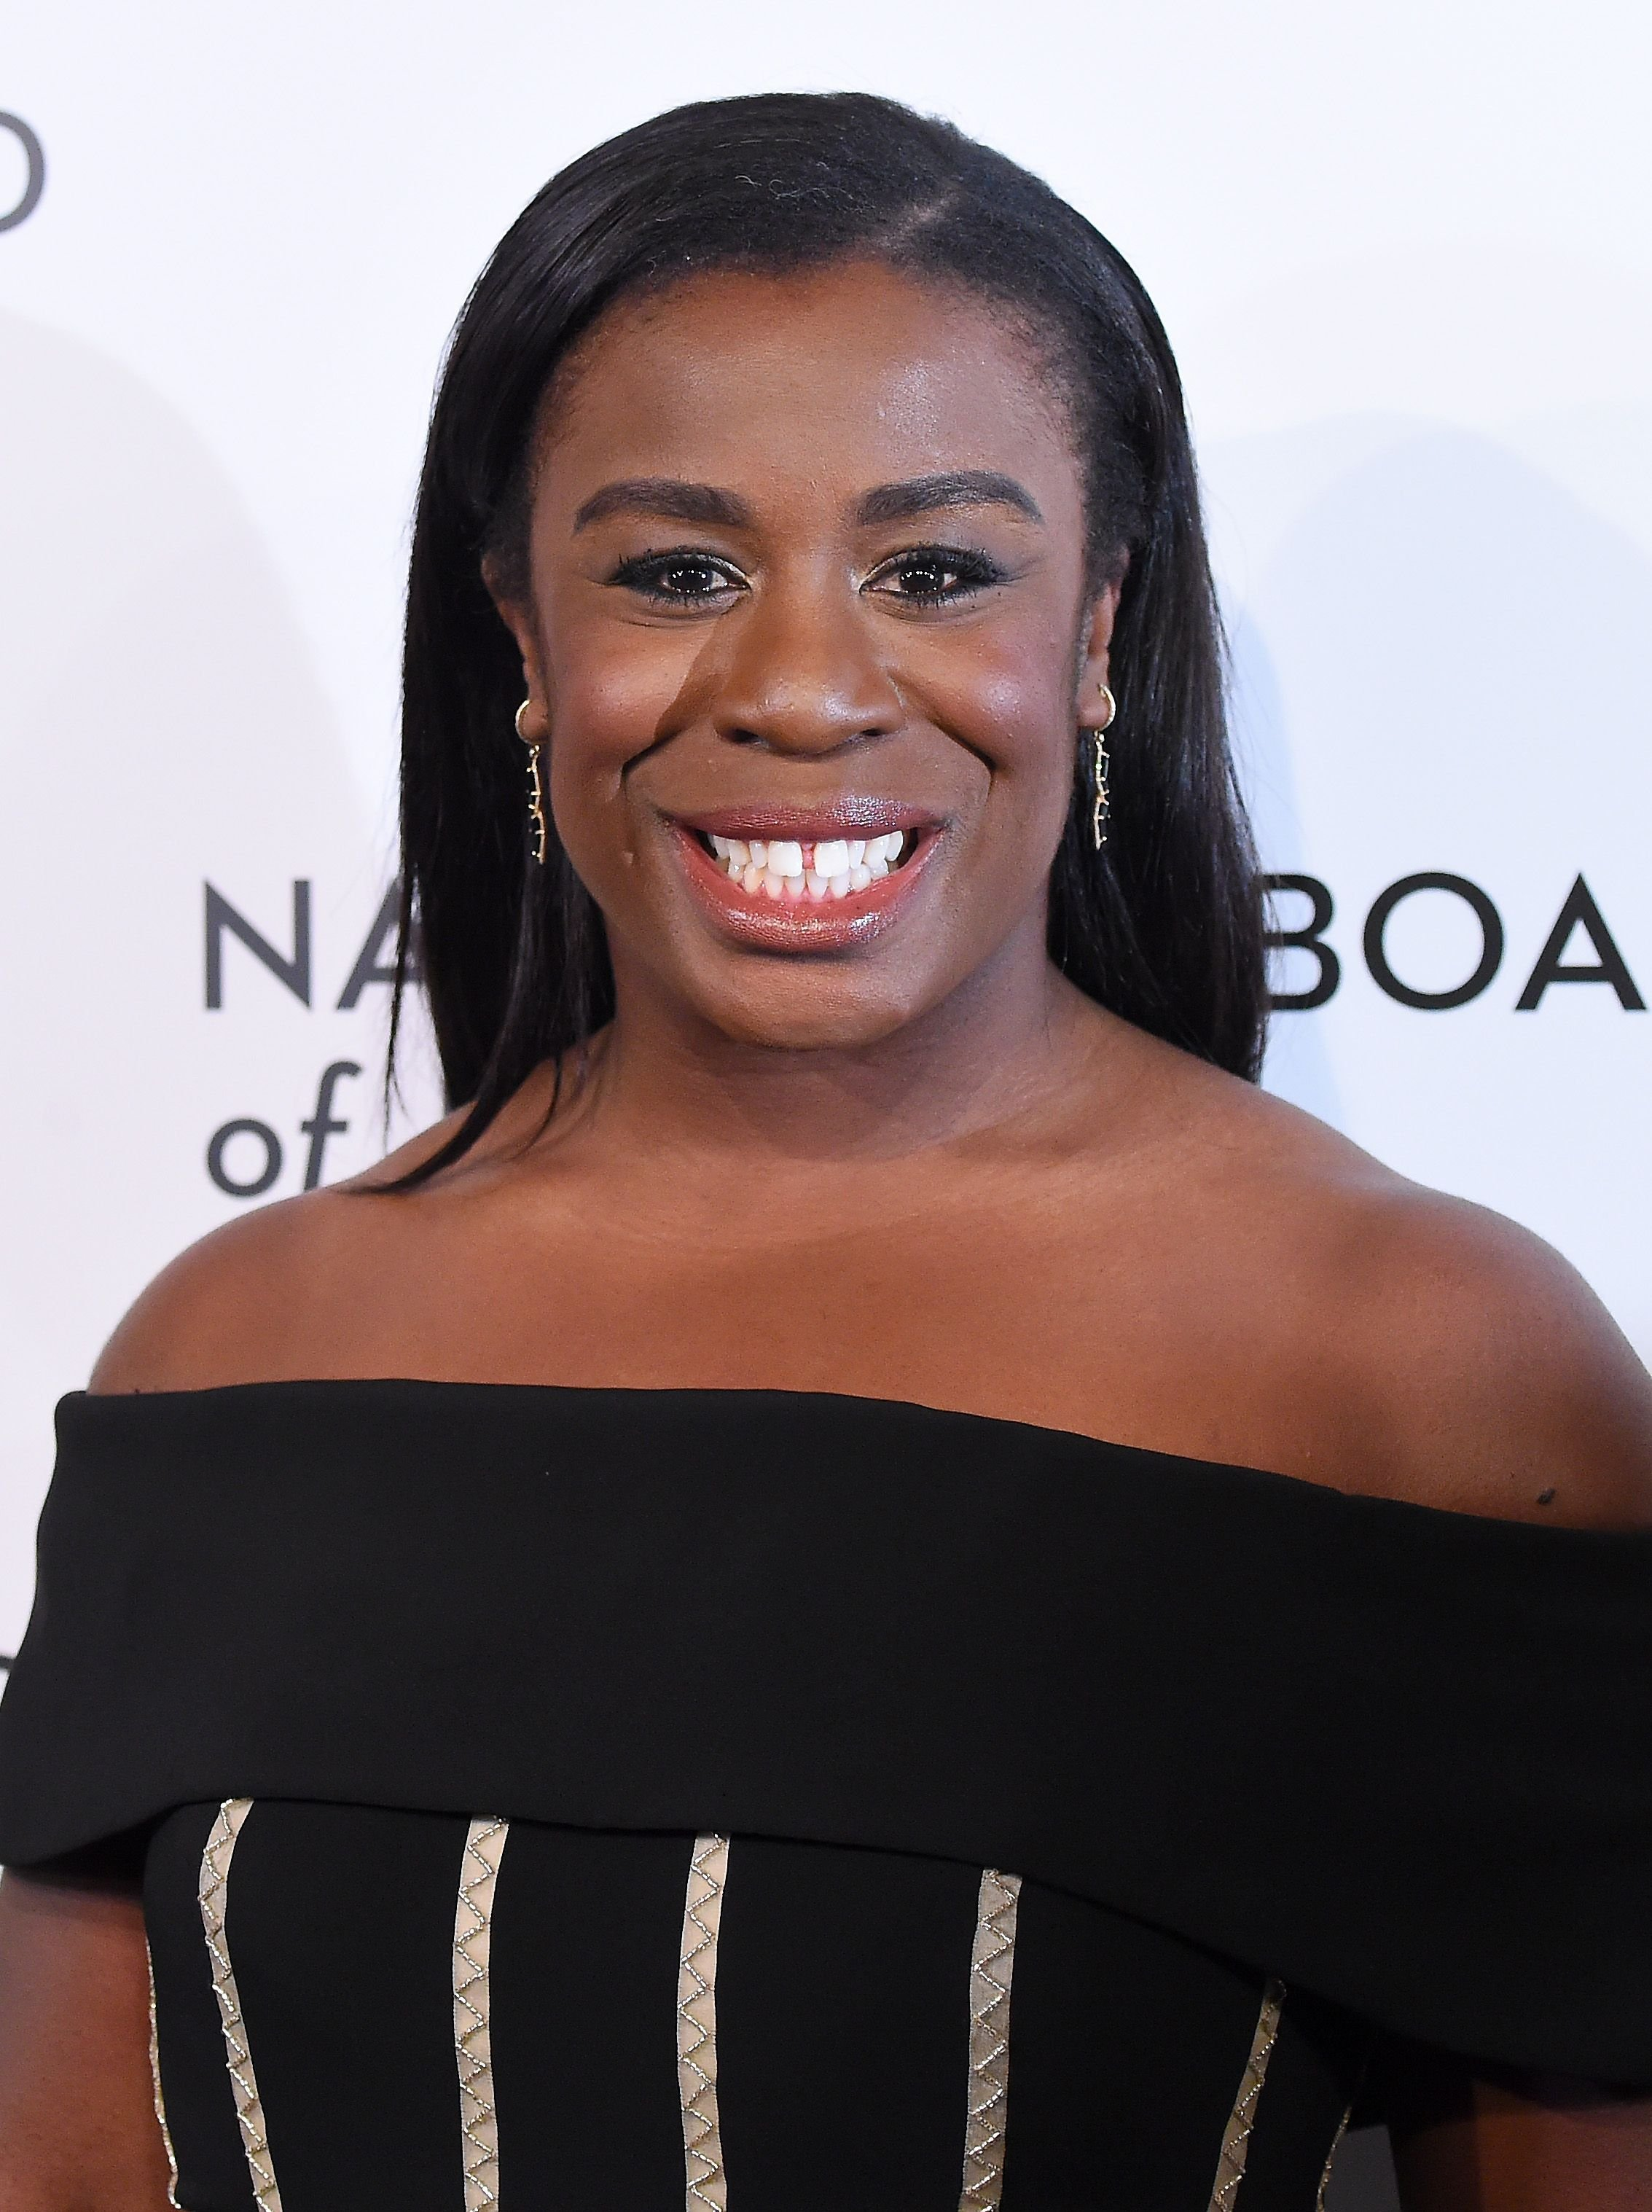 Uzo Aduba at the National Board Of Review Gala at Cipriani 42nd Street on January 08, 2019 in New York City | Photo: Getty Images